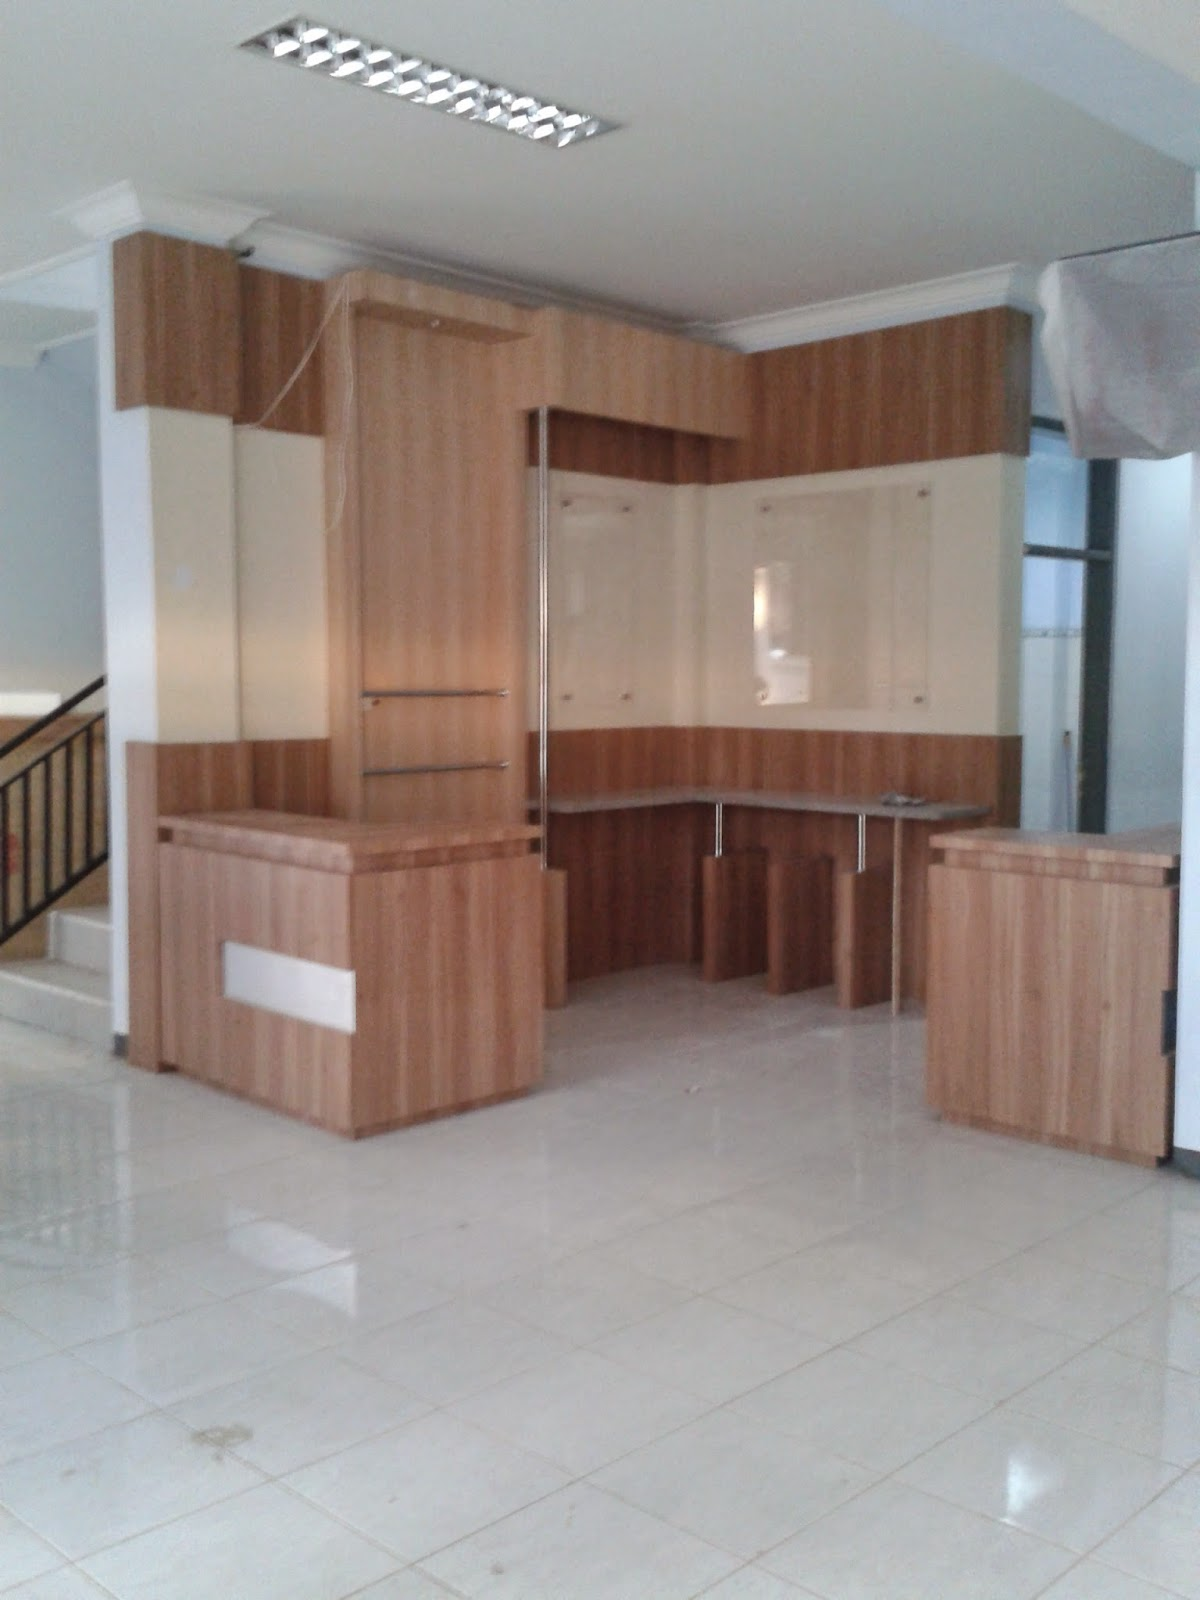 Sampel HPL pada Mini Bar